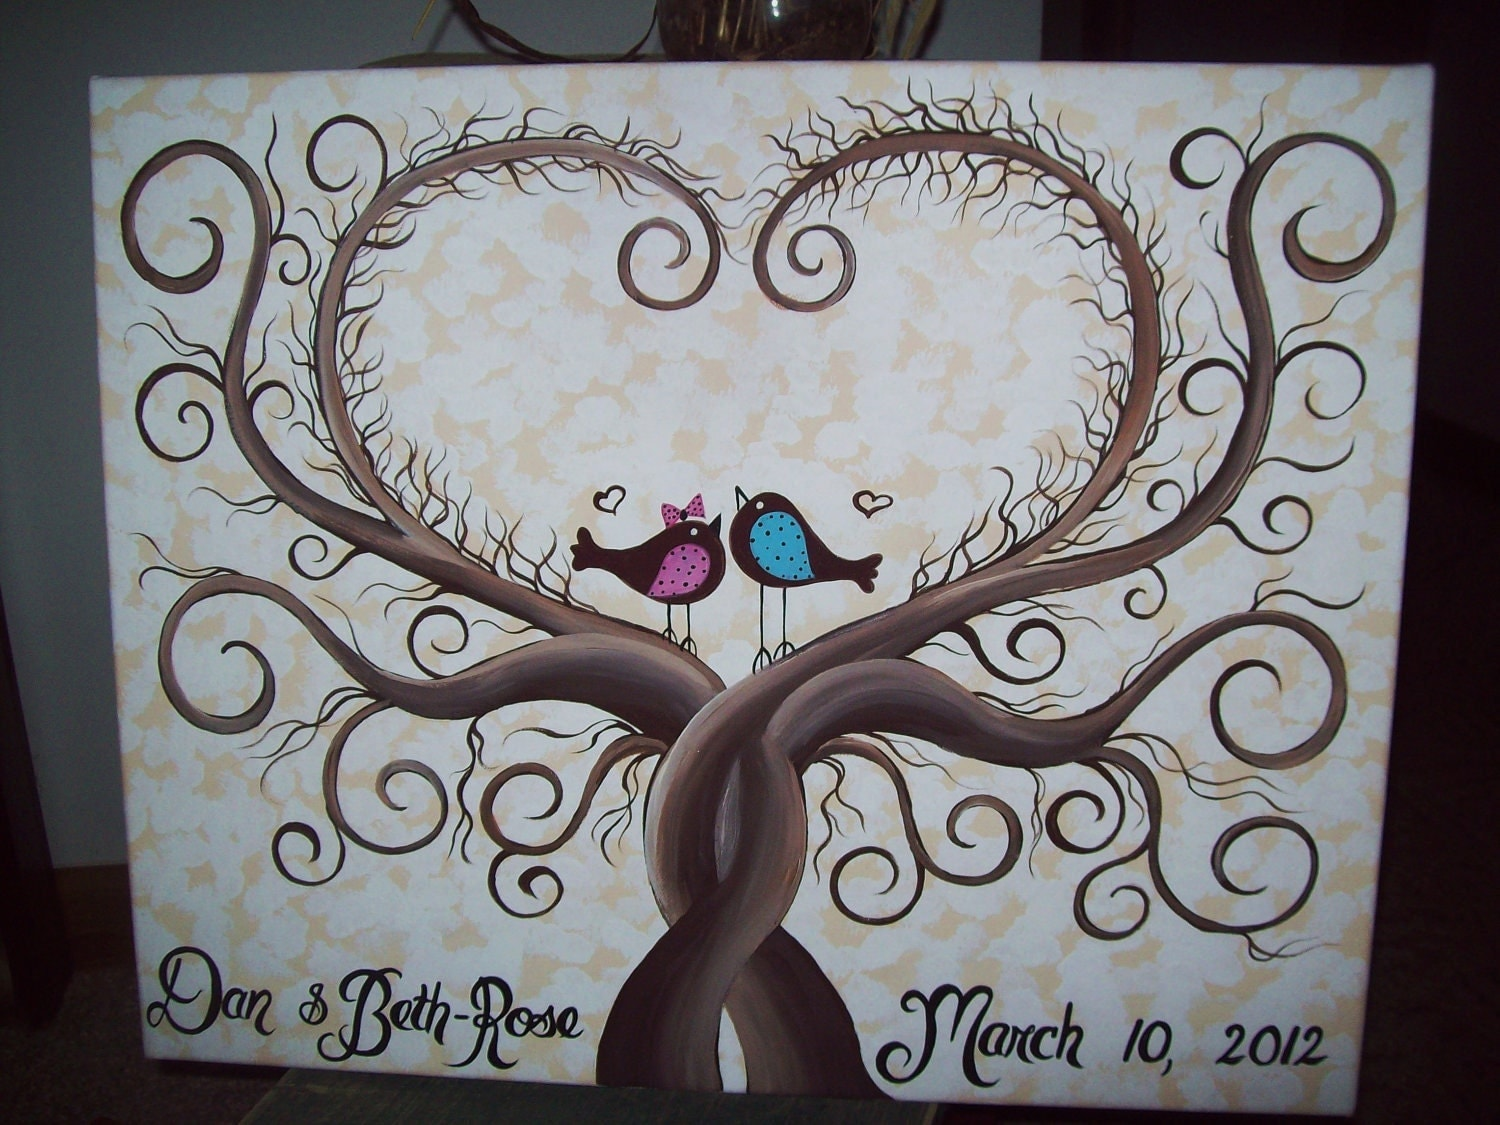 Wedding Guestbook Thumbprint Tree Canvas.....18x 24....165-185 guests...His & Her Lovebirds